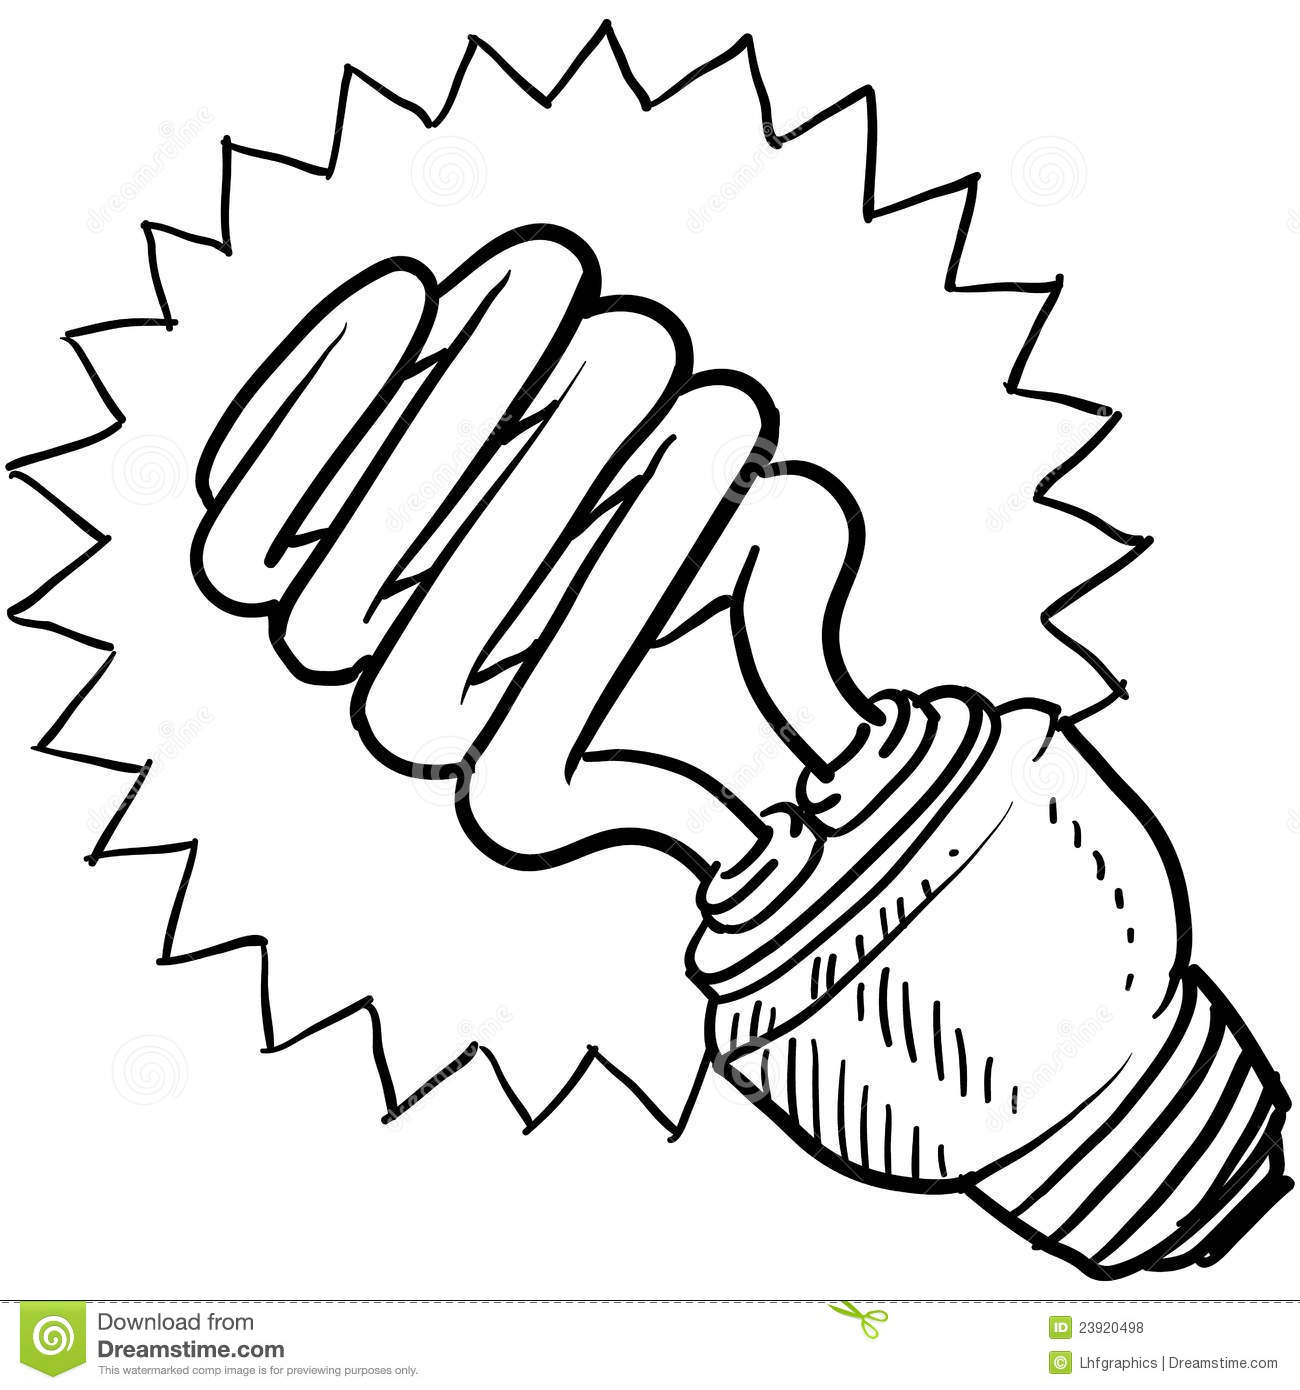 Compact Fluorescent Light Bulb Sketch Royalty Free Stock Photos.